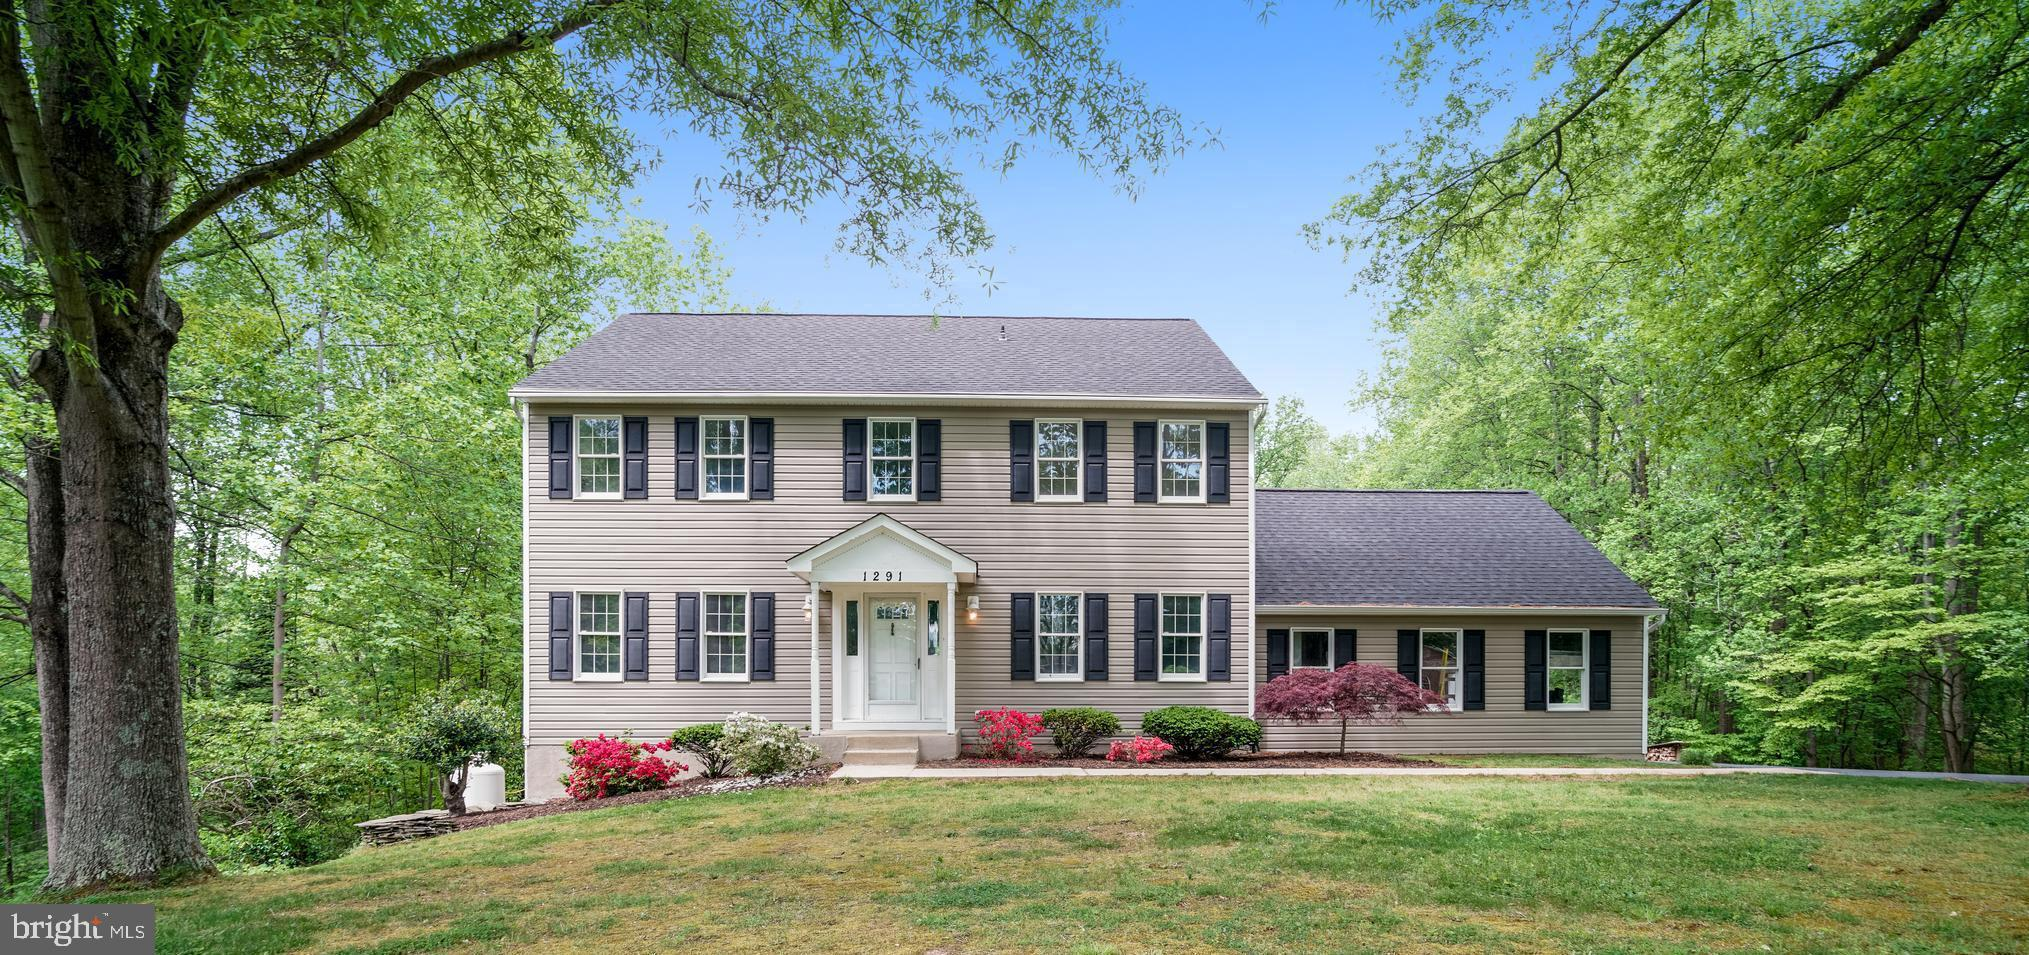 Tastefully appointed  center hall colonial with upgrades galore!  Main level features sun soaked ent